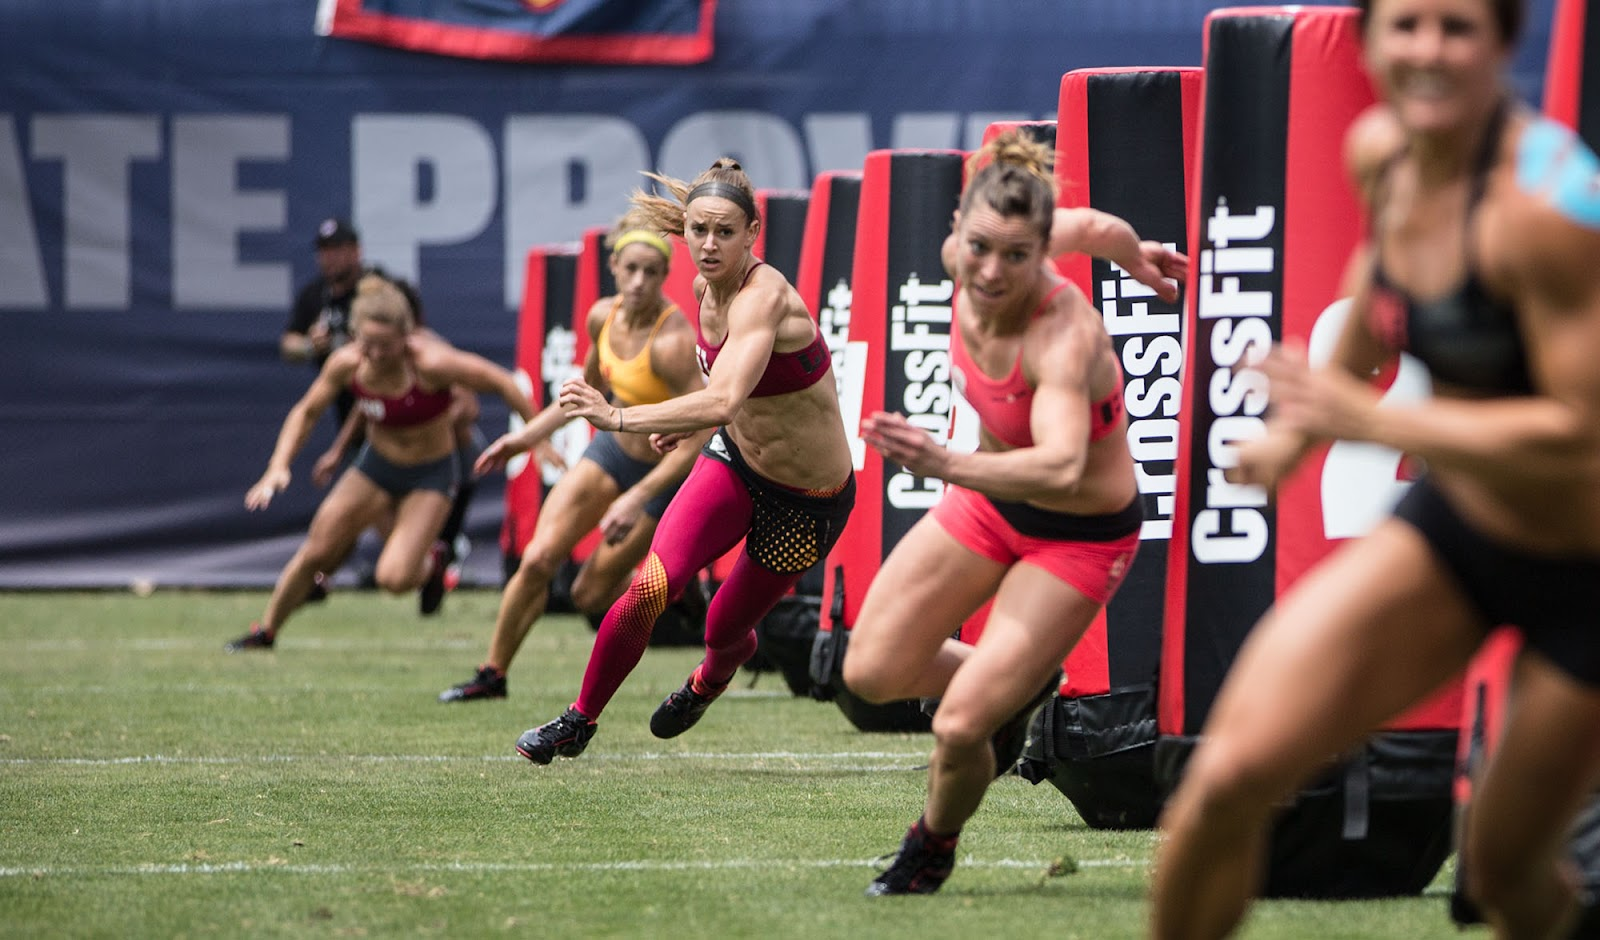 crossfit-games-2013-women-zigzag-sprint.jpg